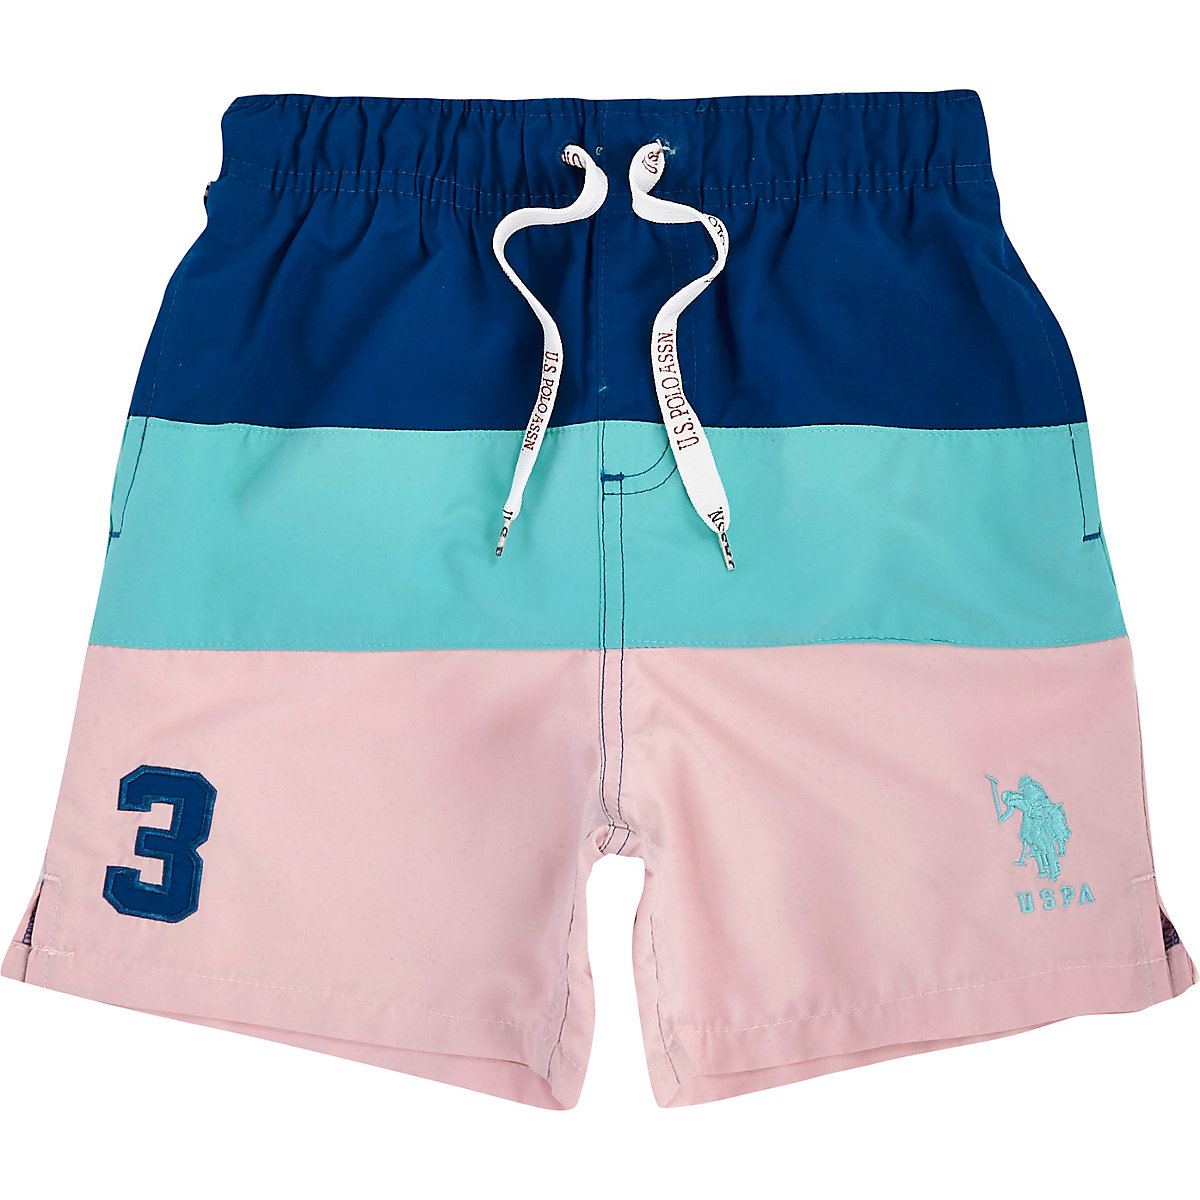 U.S. Polo Assn. – Short de bain rose colour block pour garçon